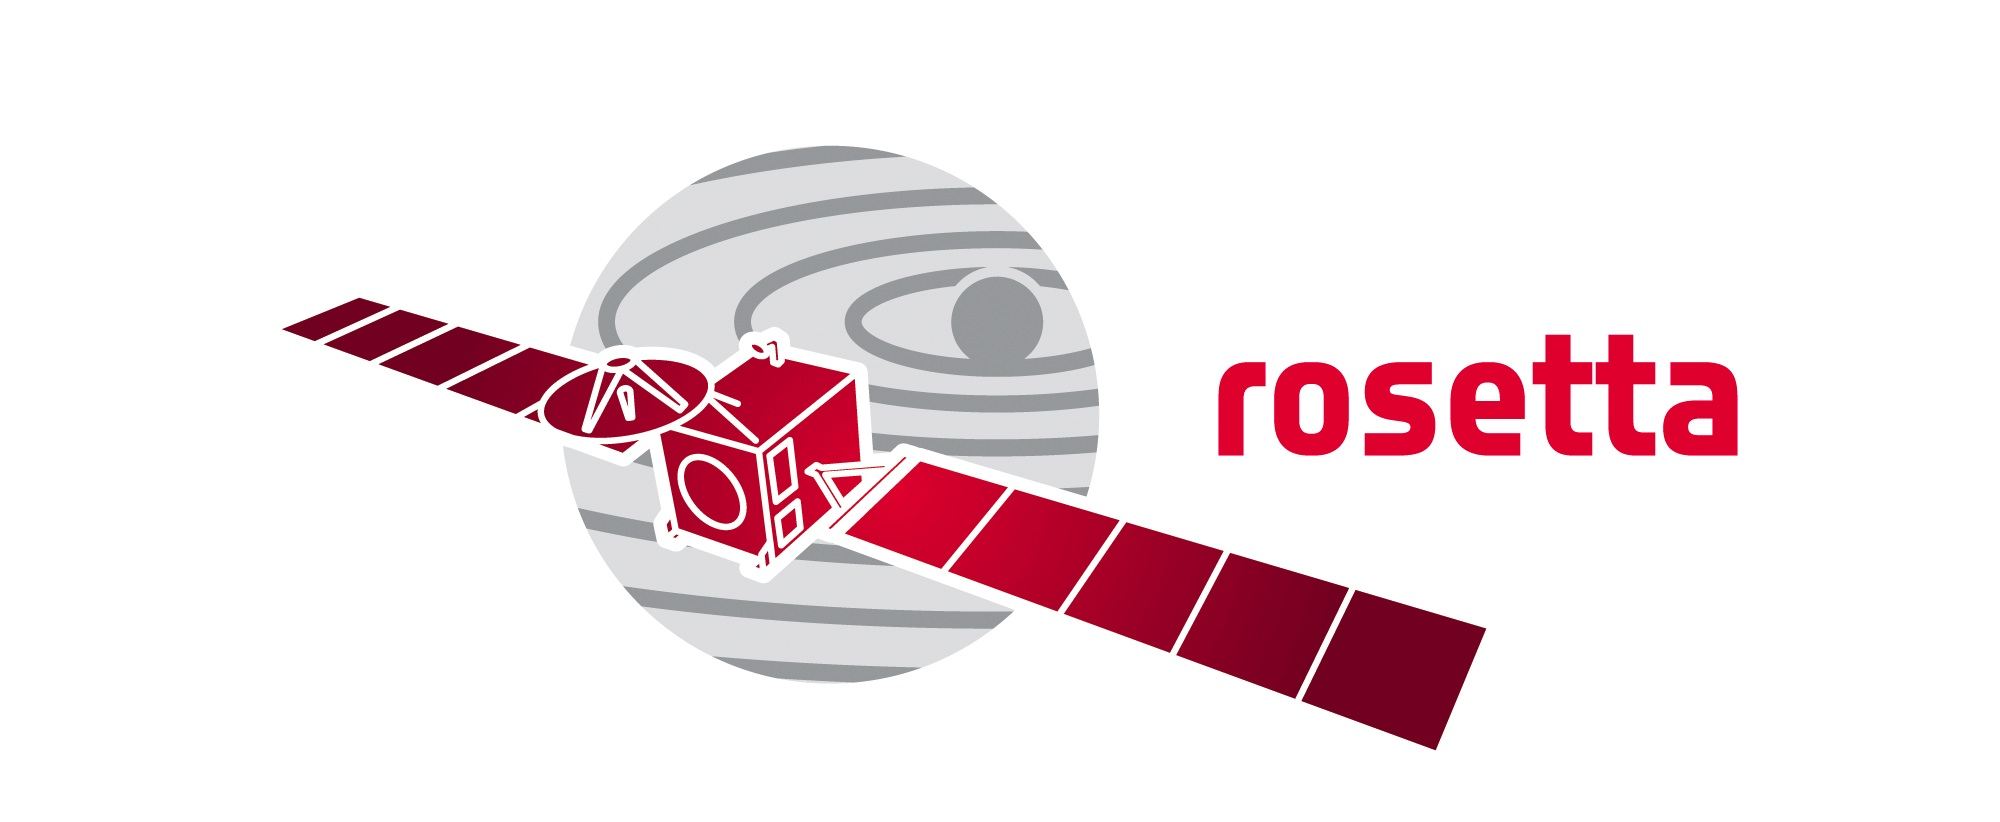 rosetta spacecraft esa logo - photo #5